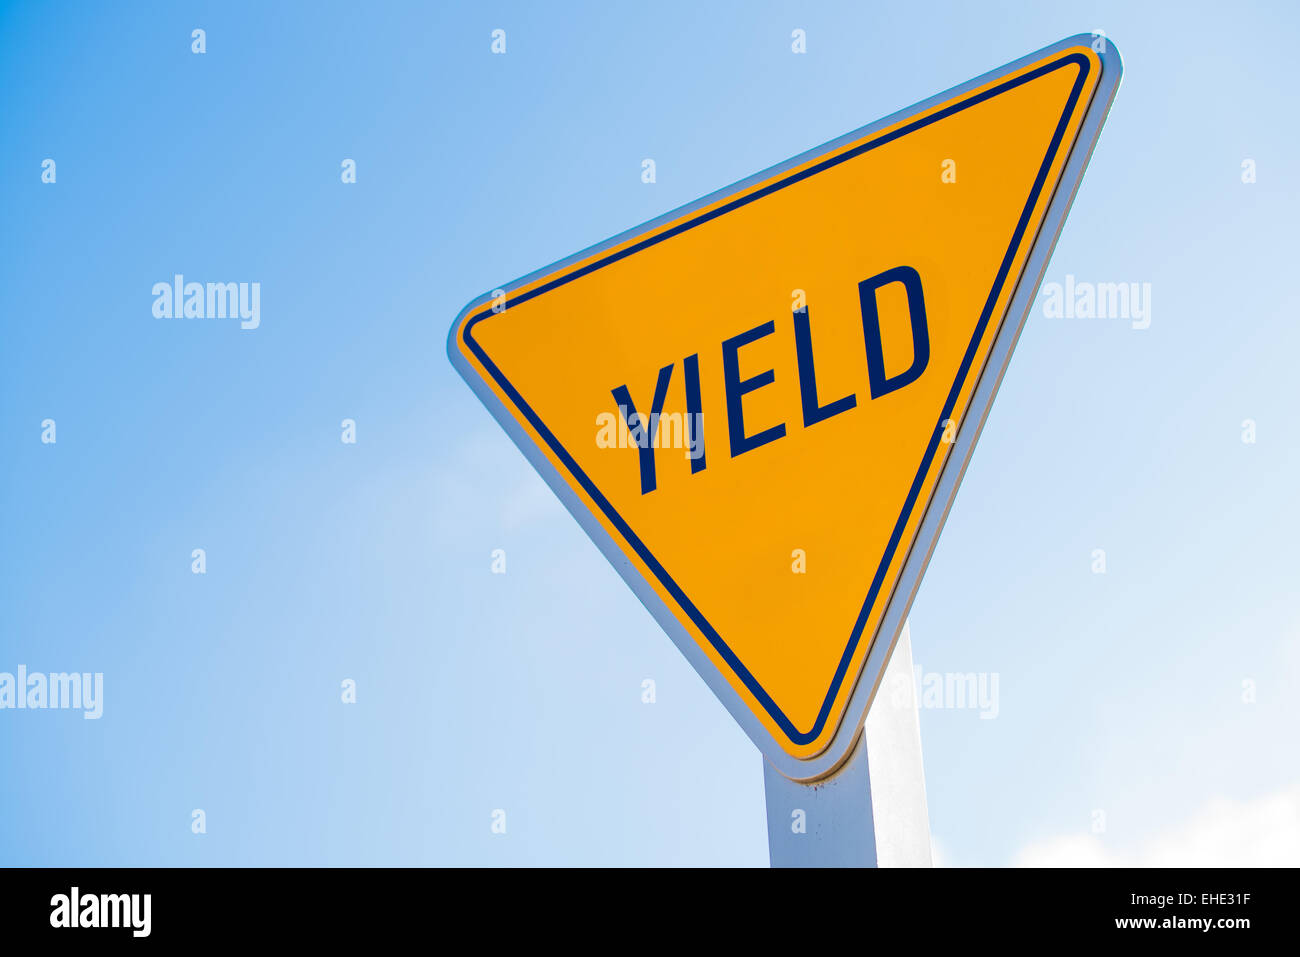 A yellow yield sign with a blue sky background - Stock Image